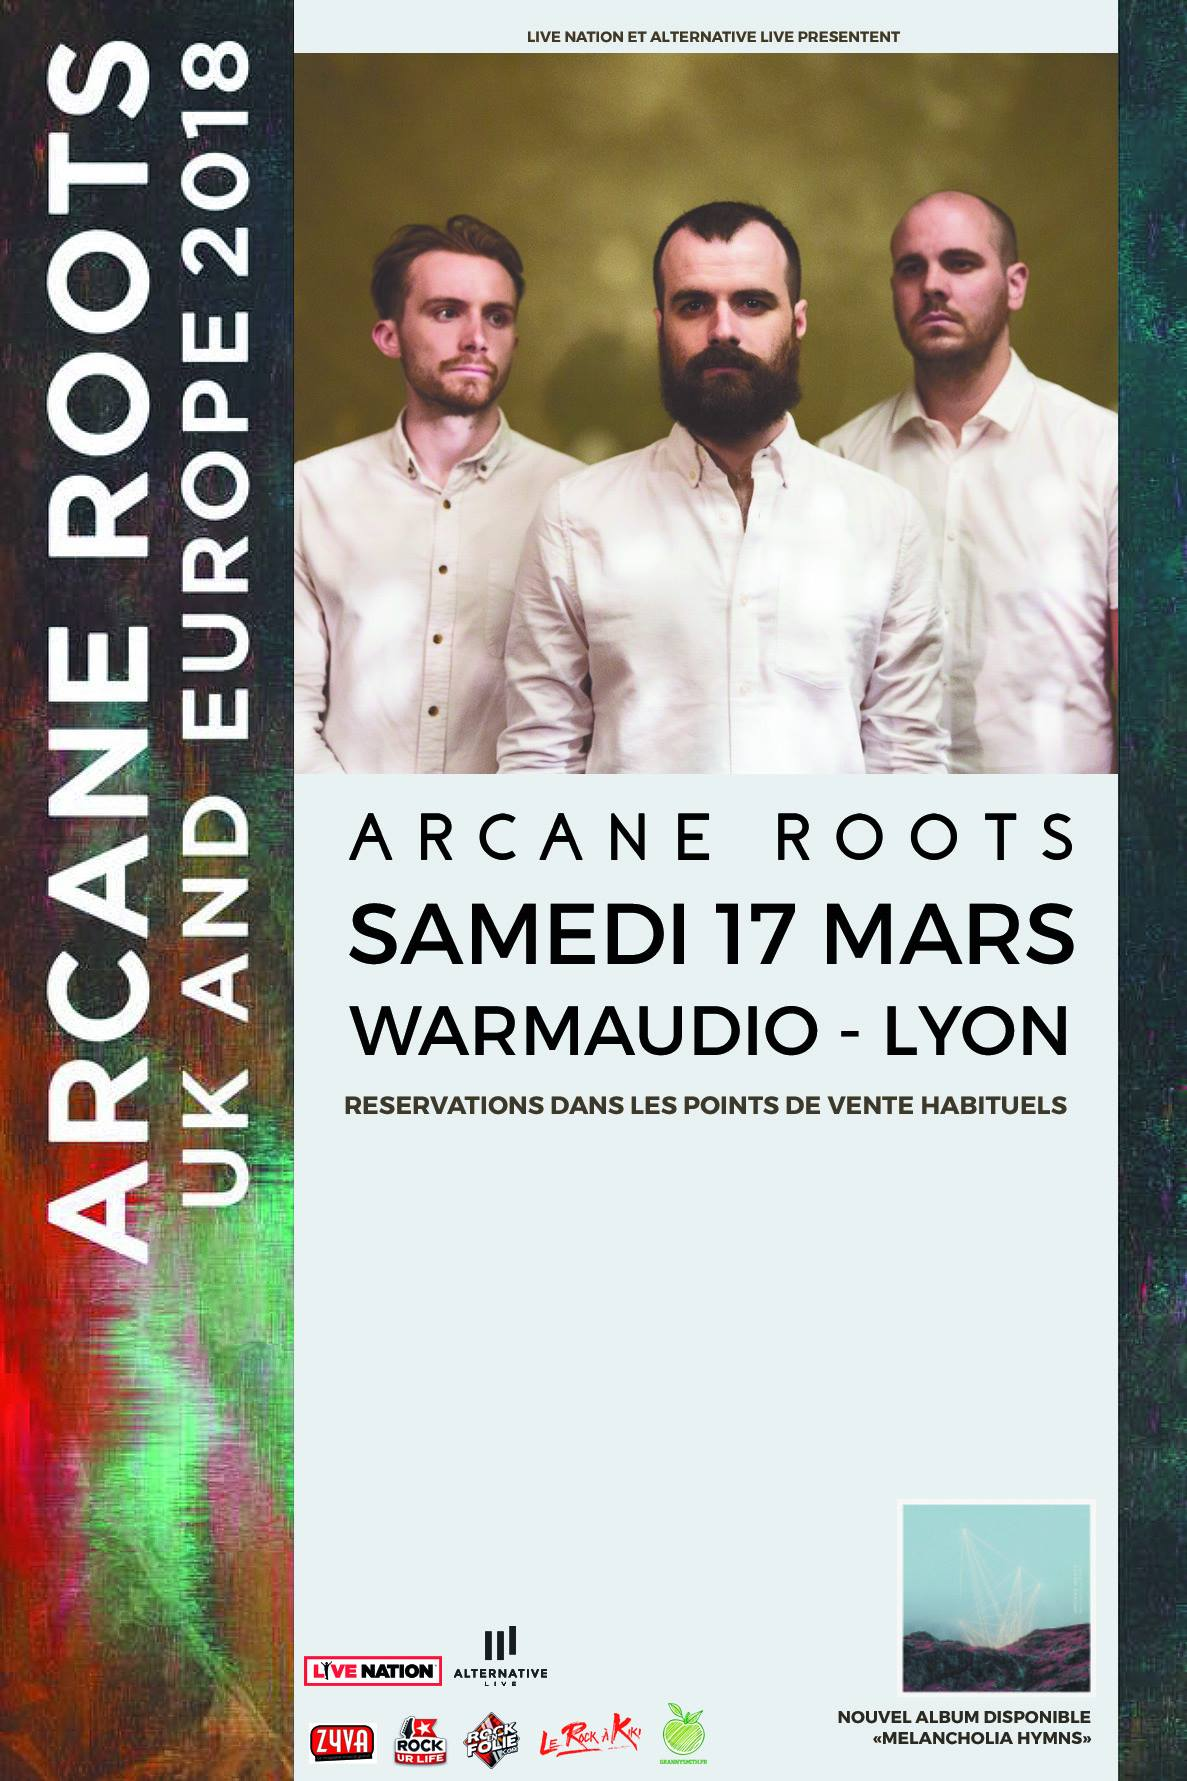 arcane roots warmaudio lyon alternative live sounds like hell productions one standing live report